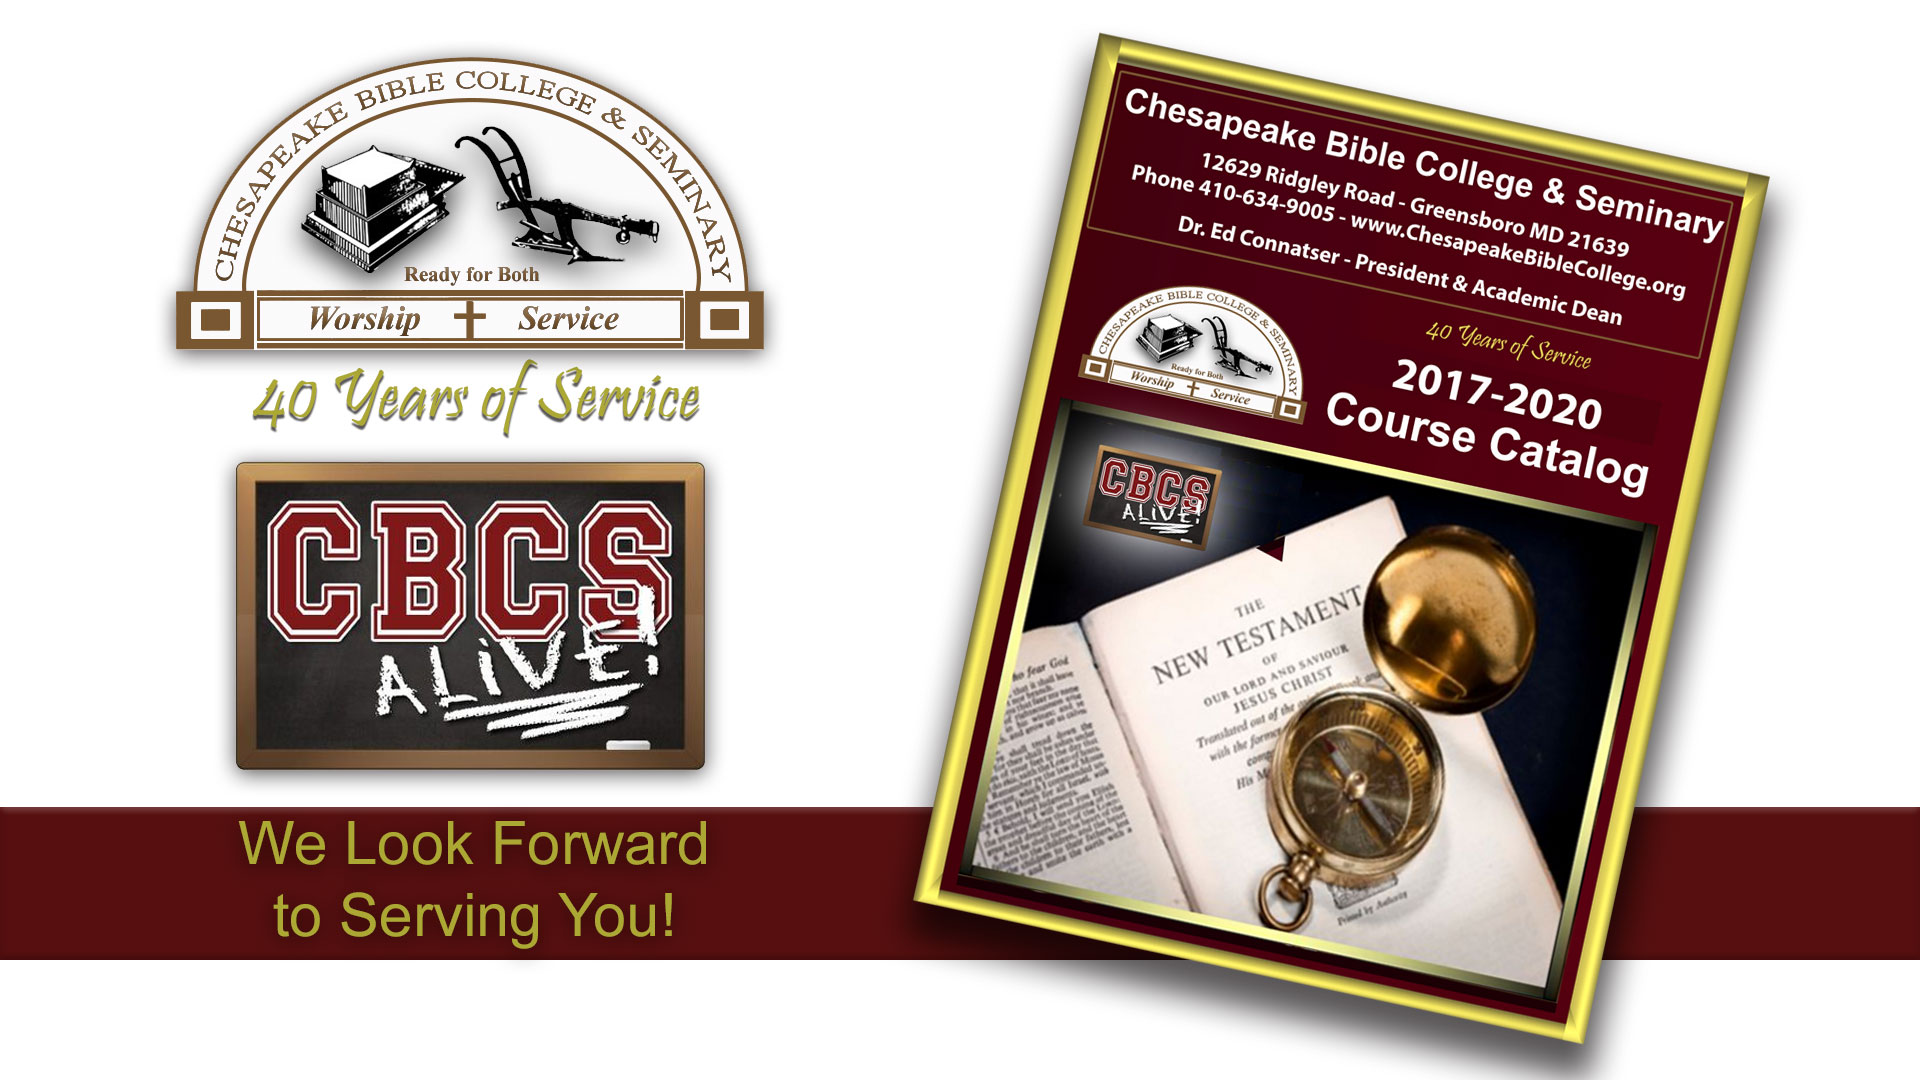 Chesapeake Bible College & Seminary Course Catalog